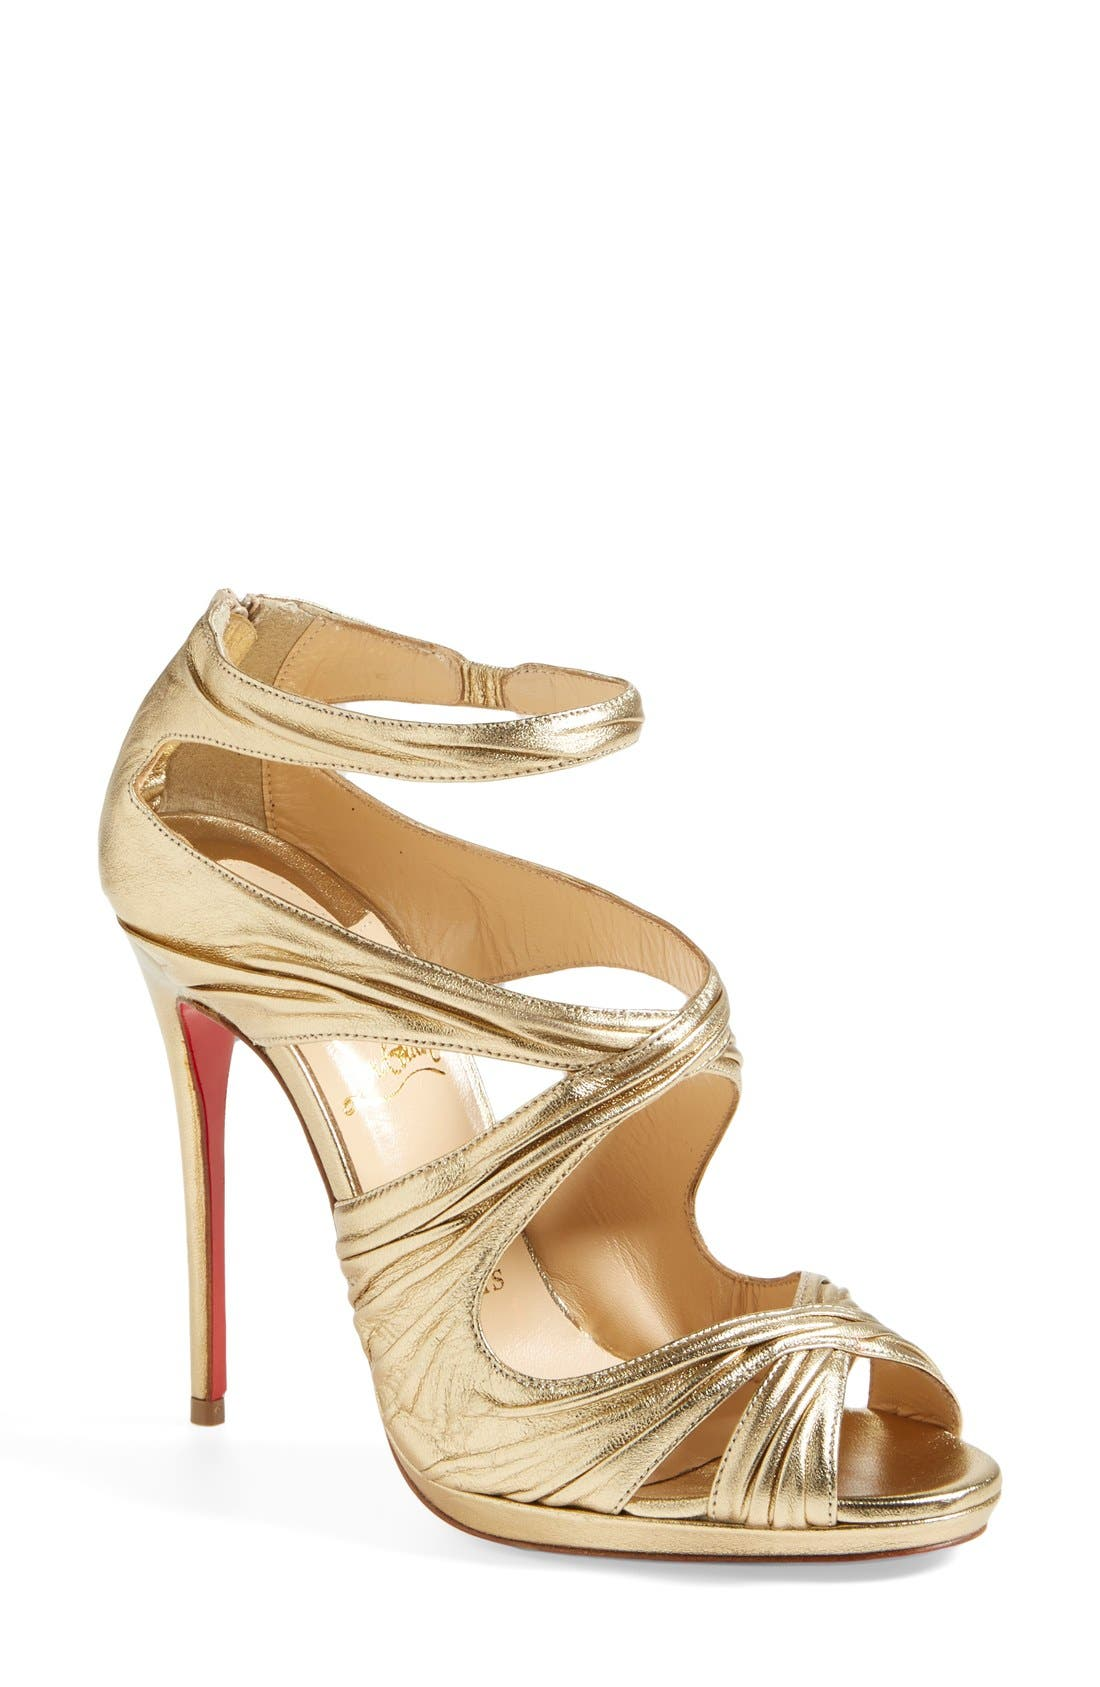 Alternate Image 1 Selected - Christian Louboutin 'Kashou' Metallic Nappa Leather Sandal